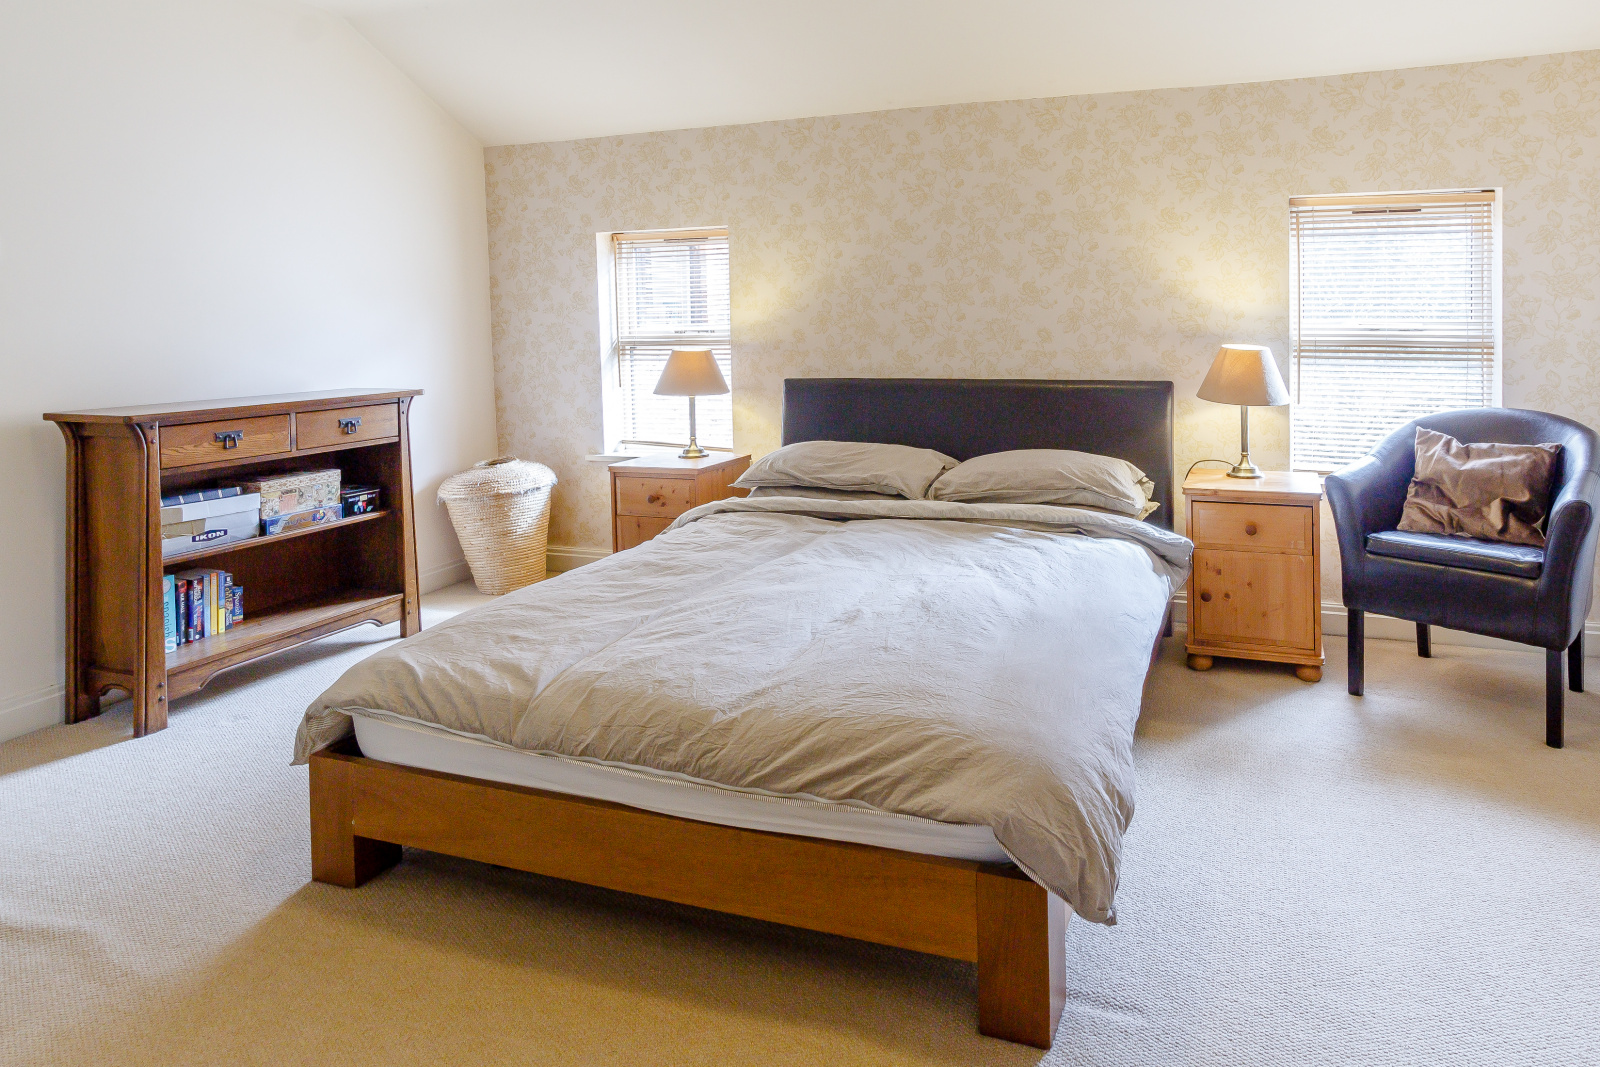 Barn Conversion For Sale In Bradshaw Hall Fold Bolton Bl2 4jh From Fitted Sheet Diagram Click Details How To A